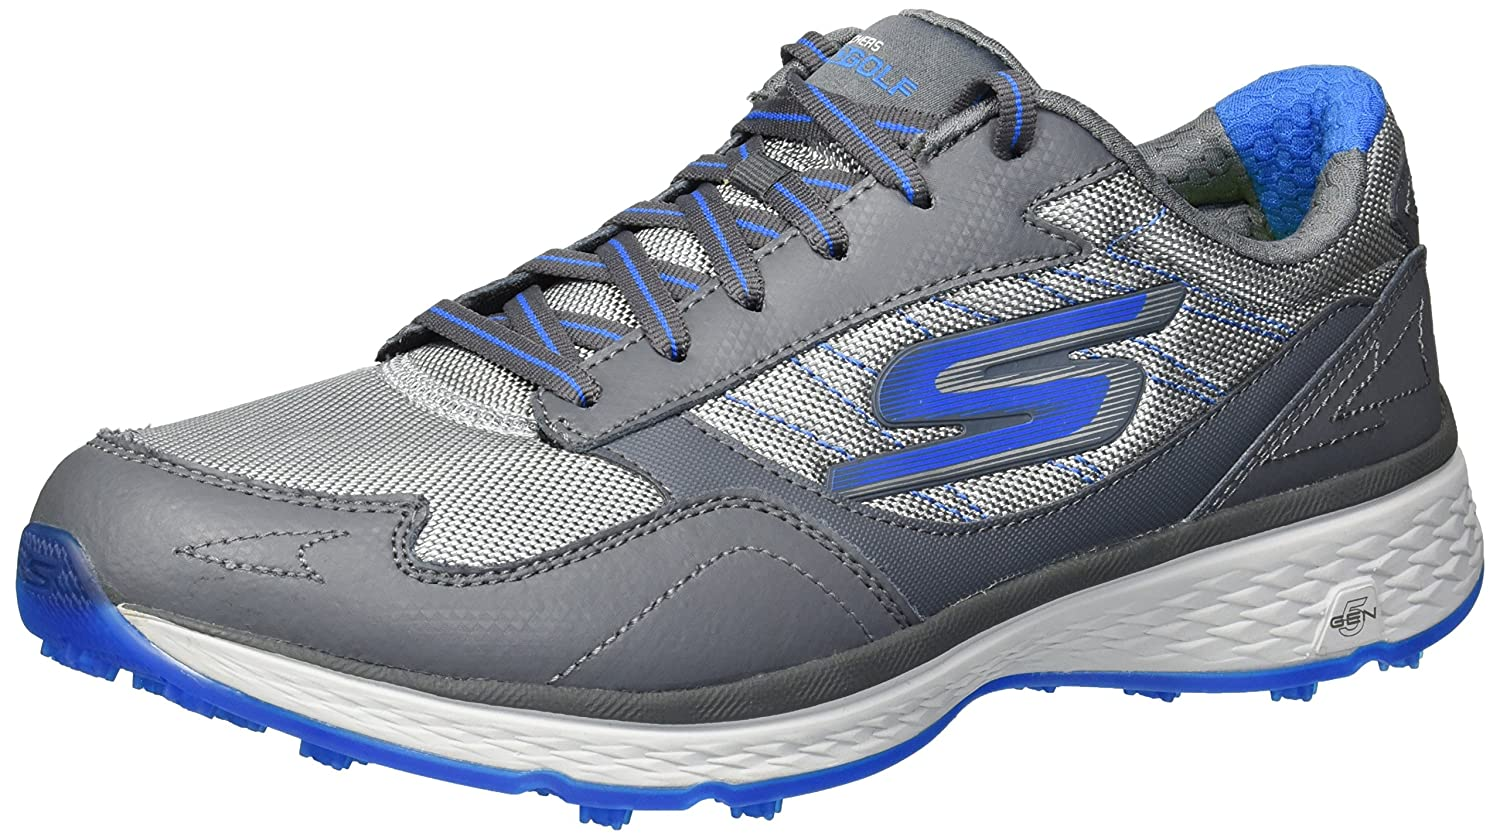 Skechers Golf Men's Go Golf Fairway Golf Shoe B01GSH5G3Y 7.5 D(M) US|Charcoal/Blue